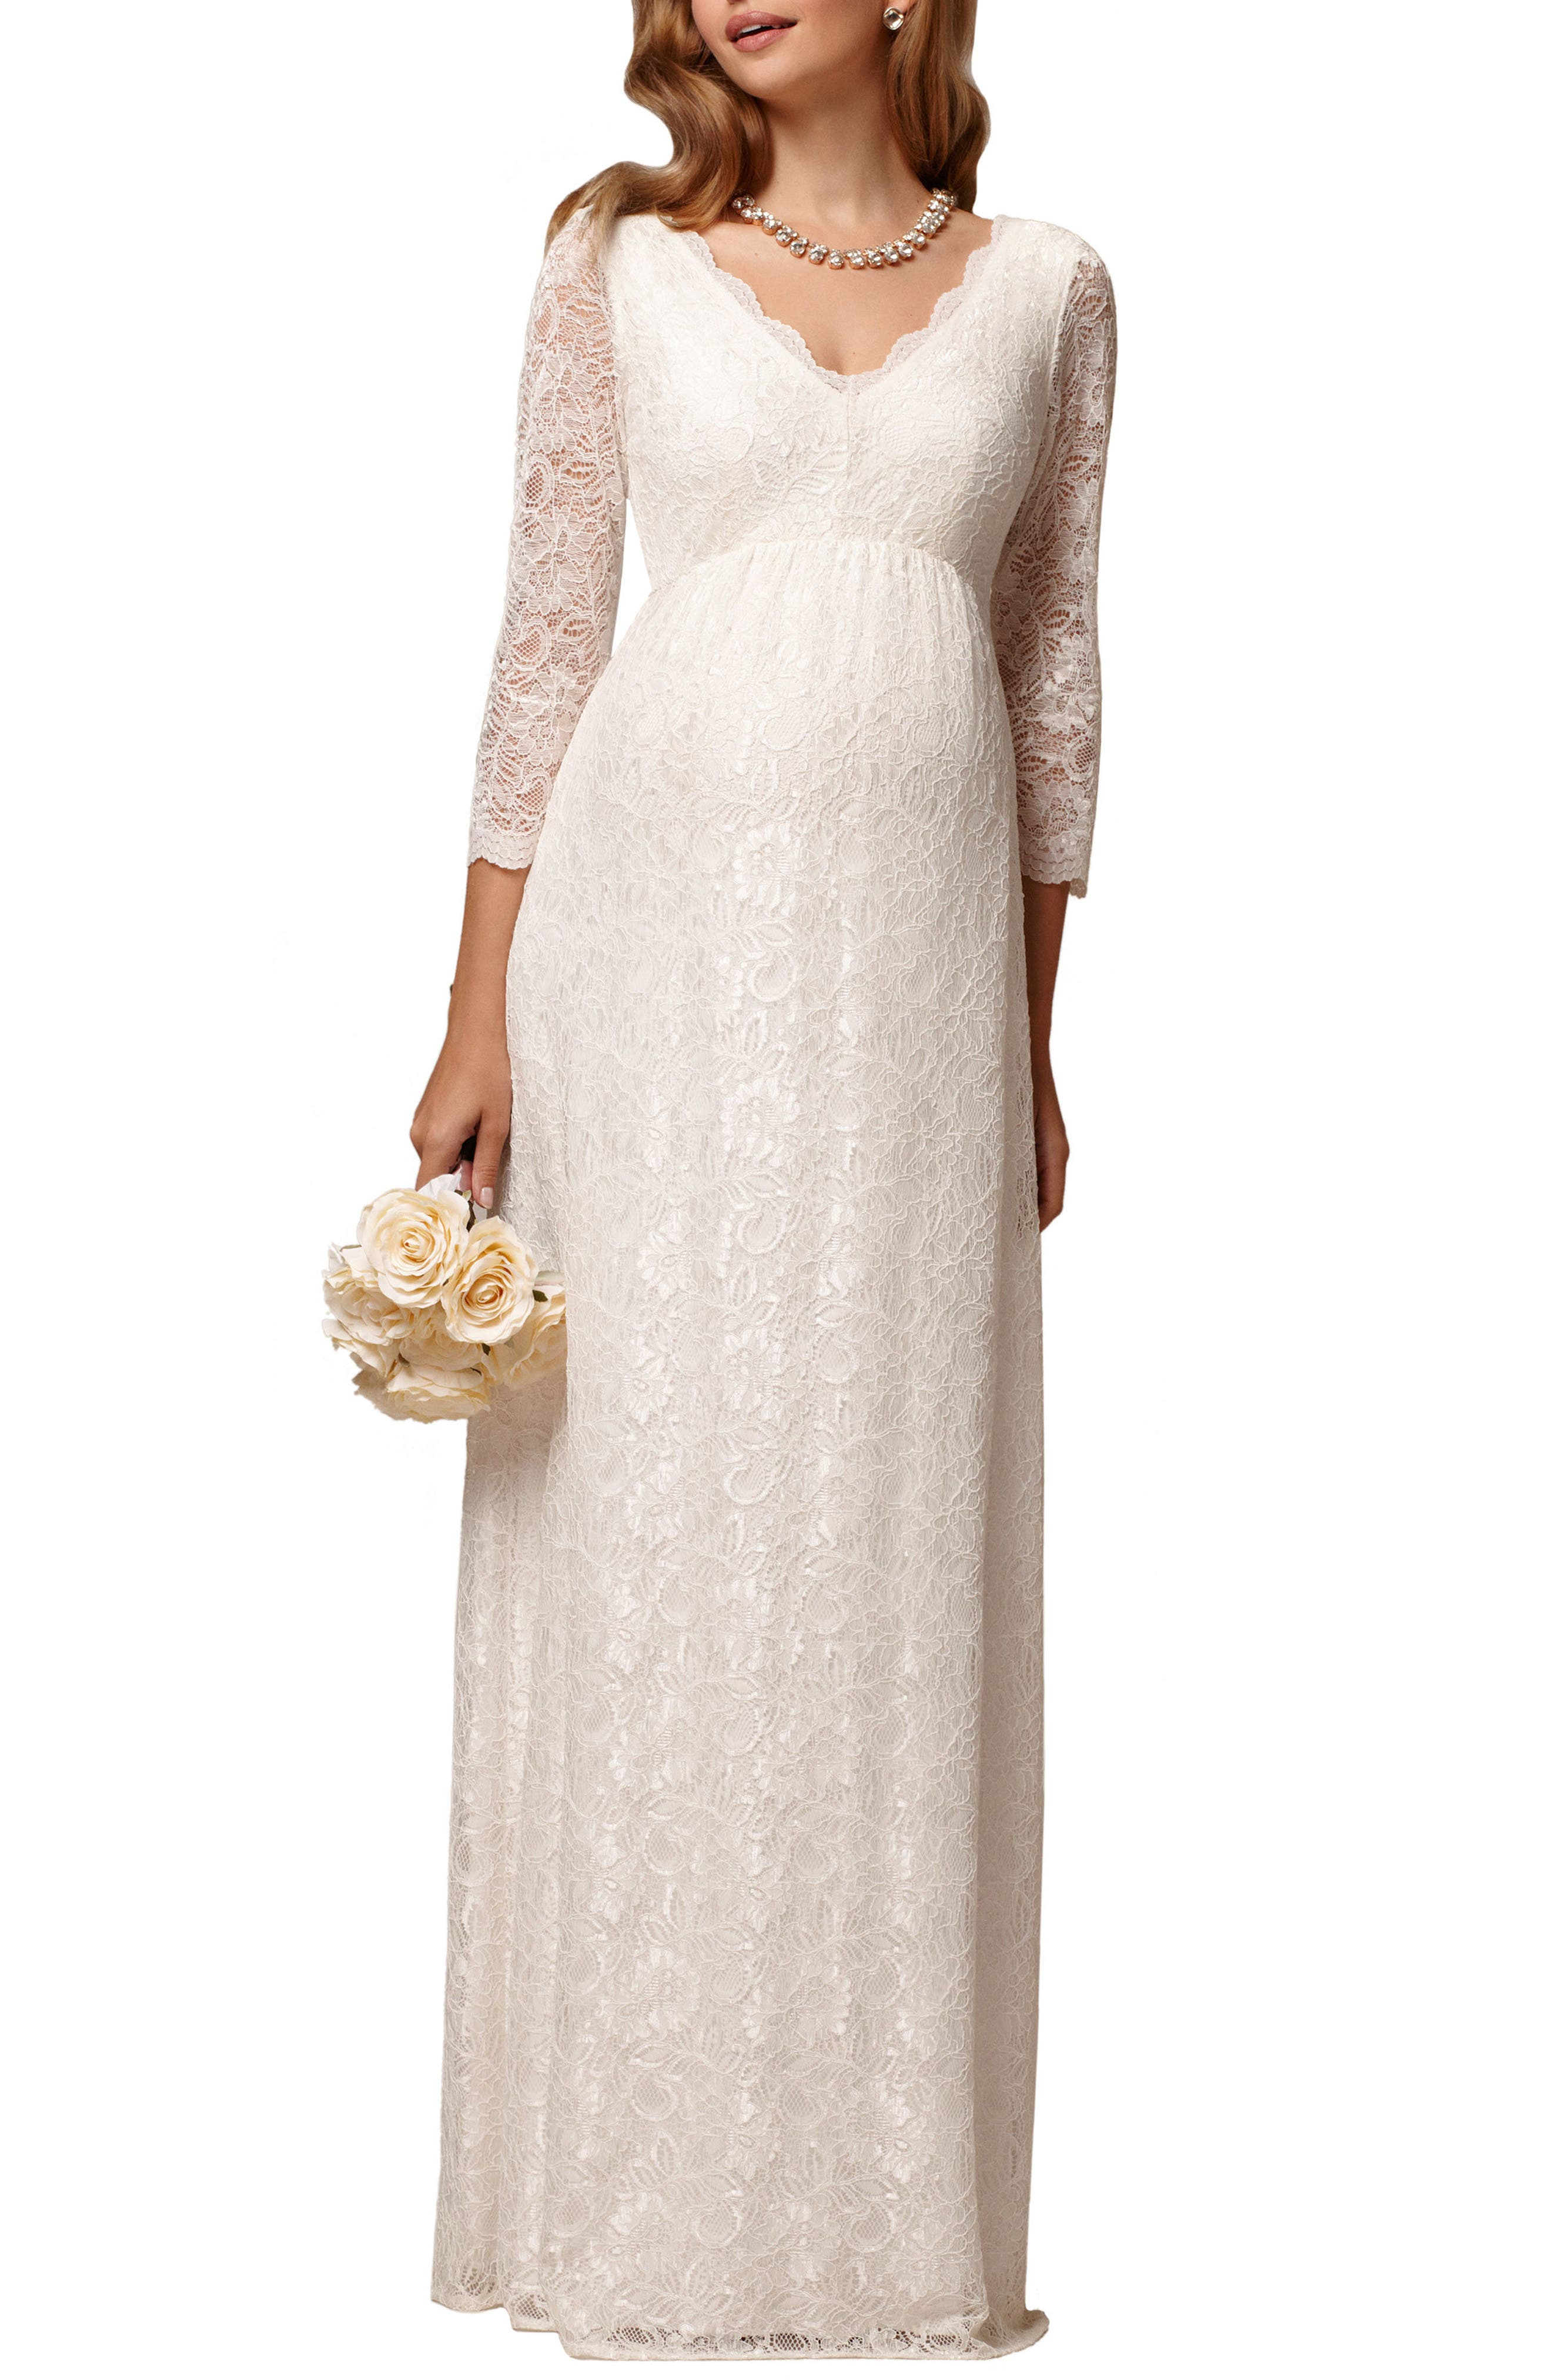 Tiffany Rose Chloe Lace Maternity Gown, White